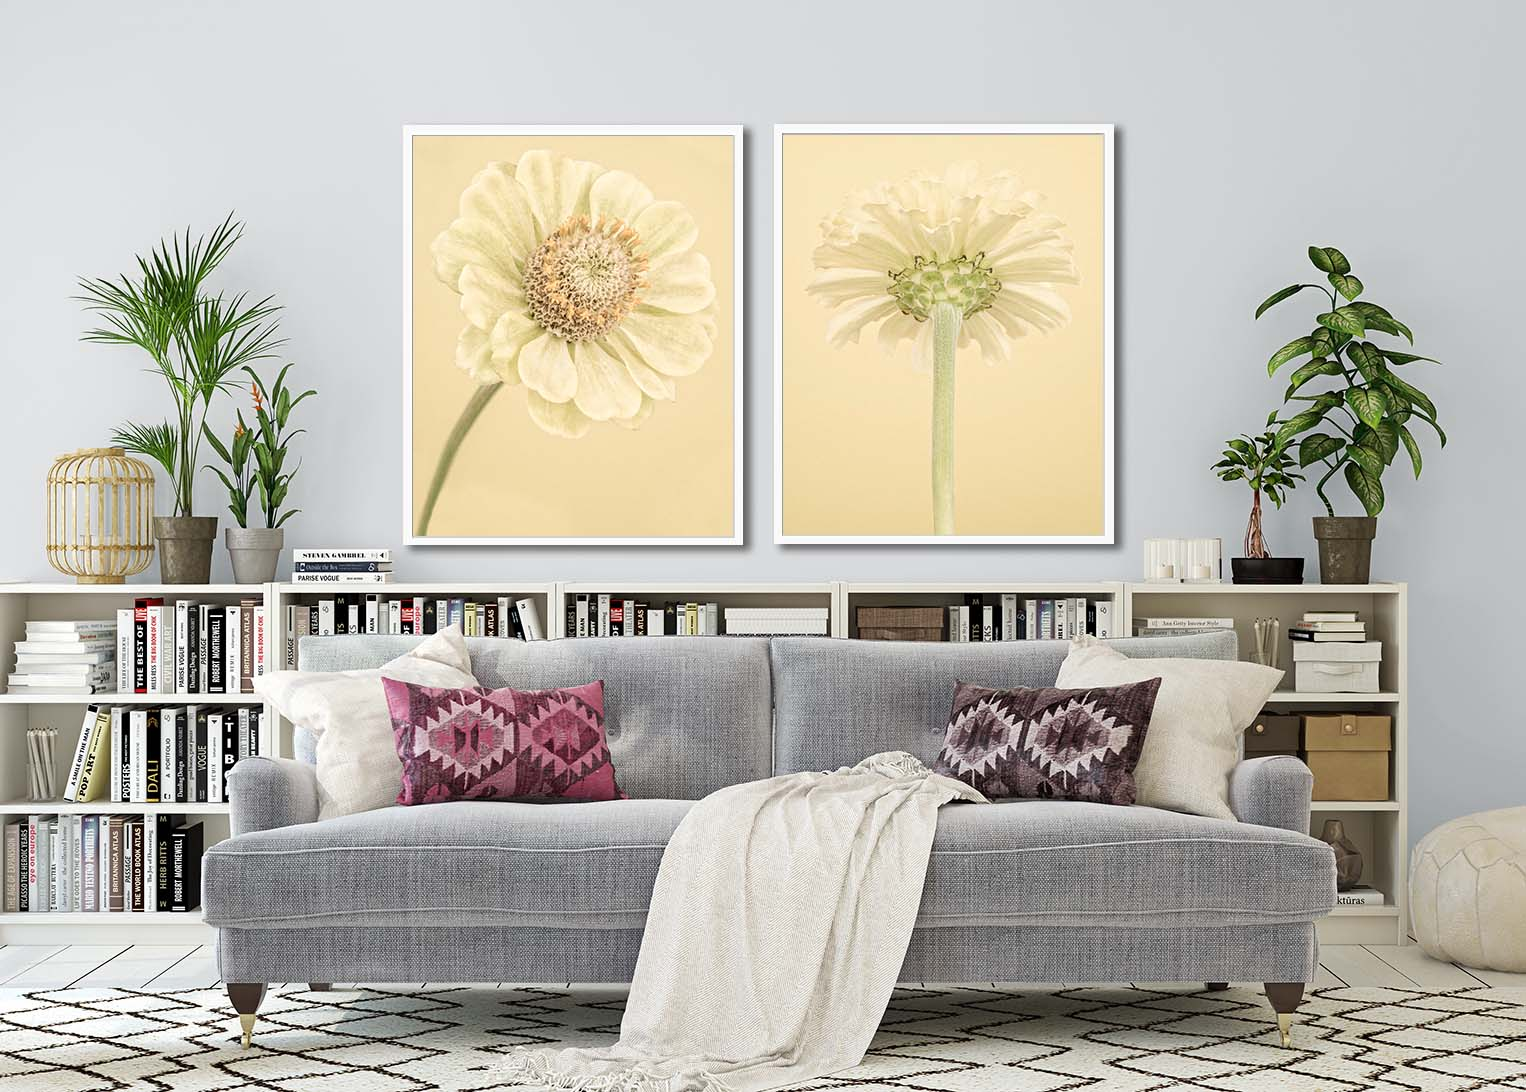 Pale Yellow Zinnia I+II. Limited edition floral prints by fine art photographer Paul Coghlin.